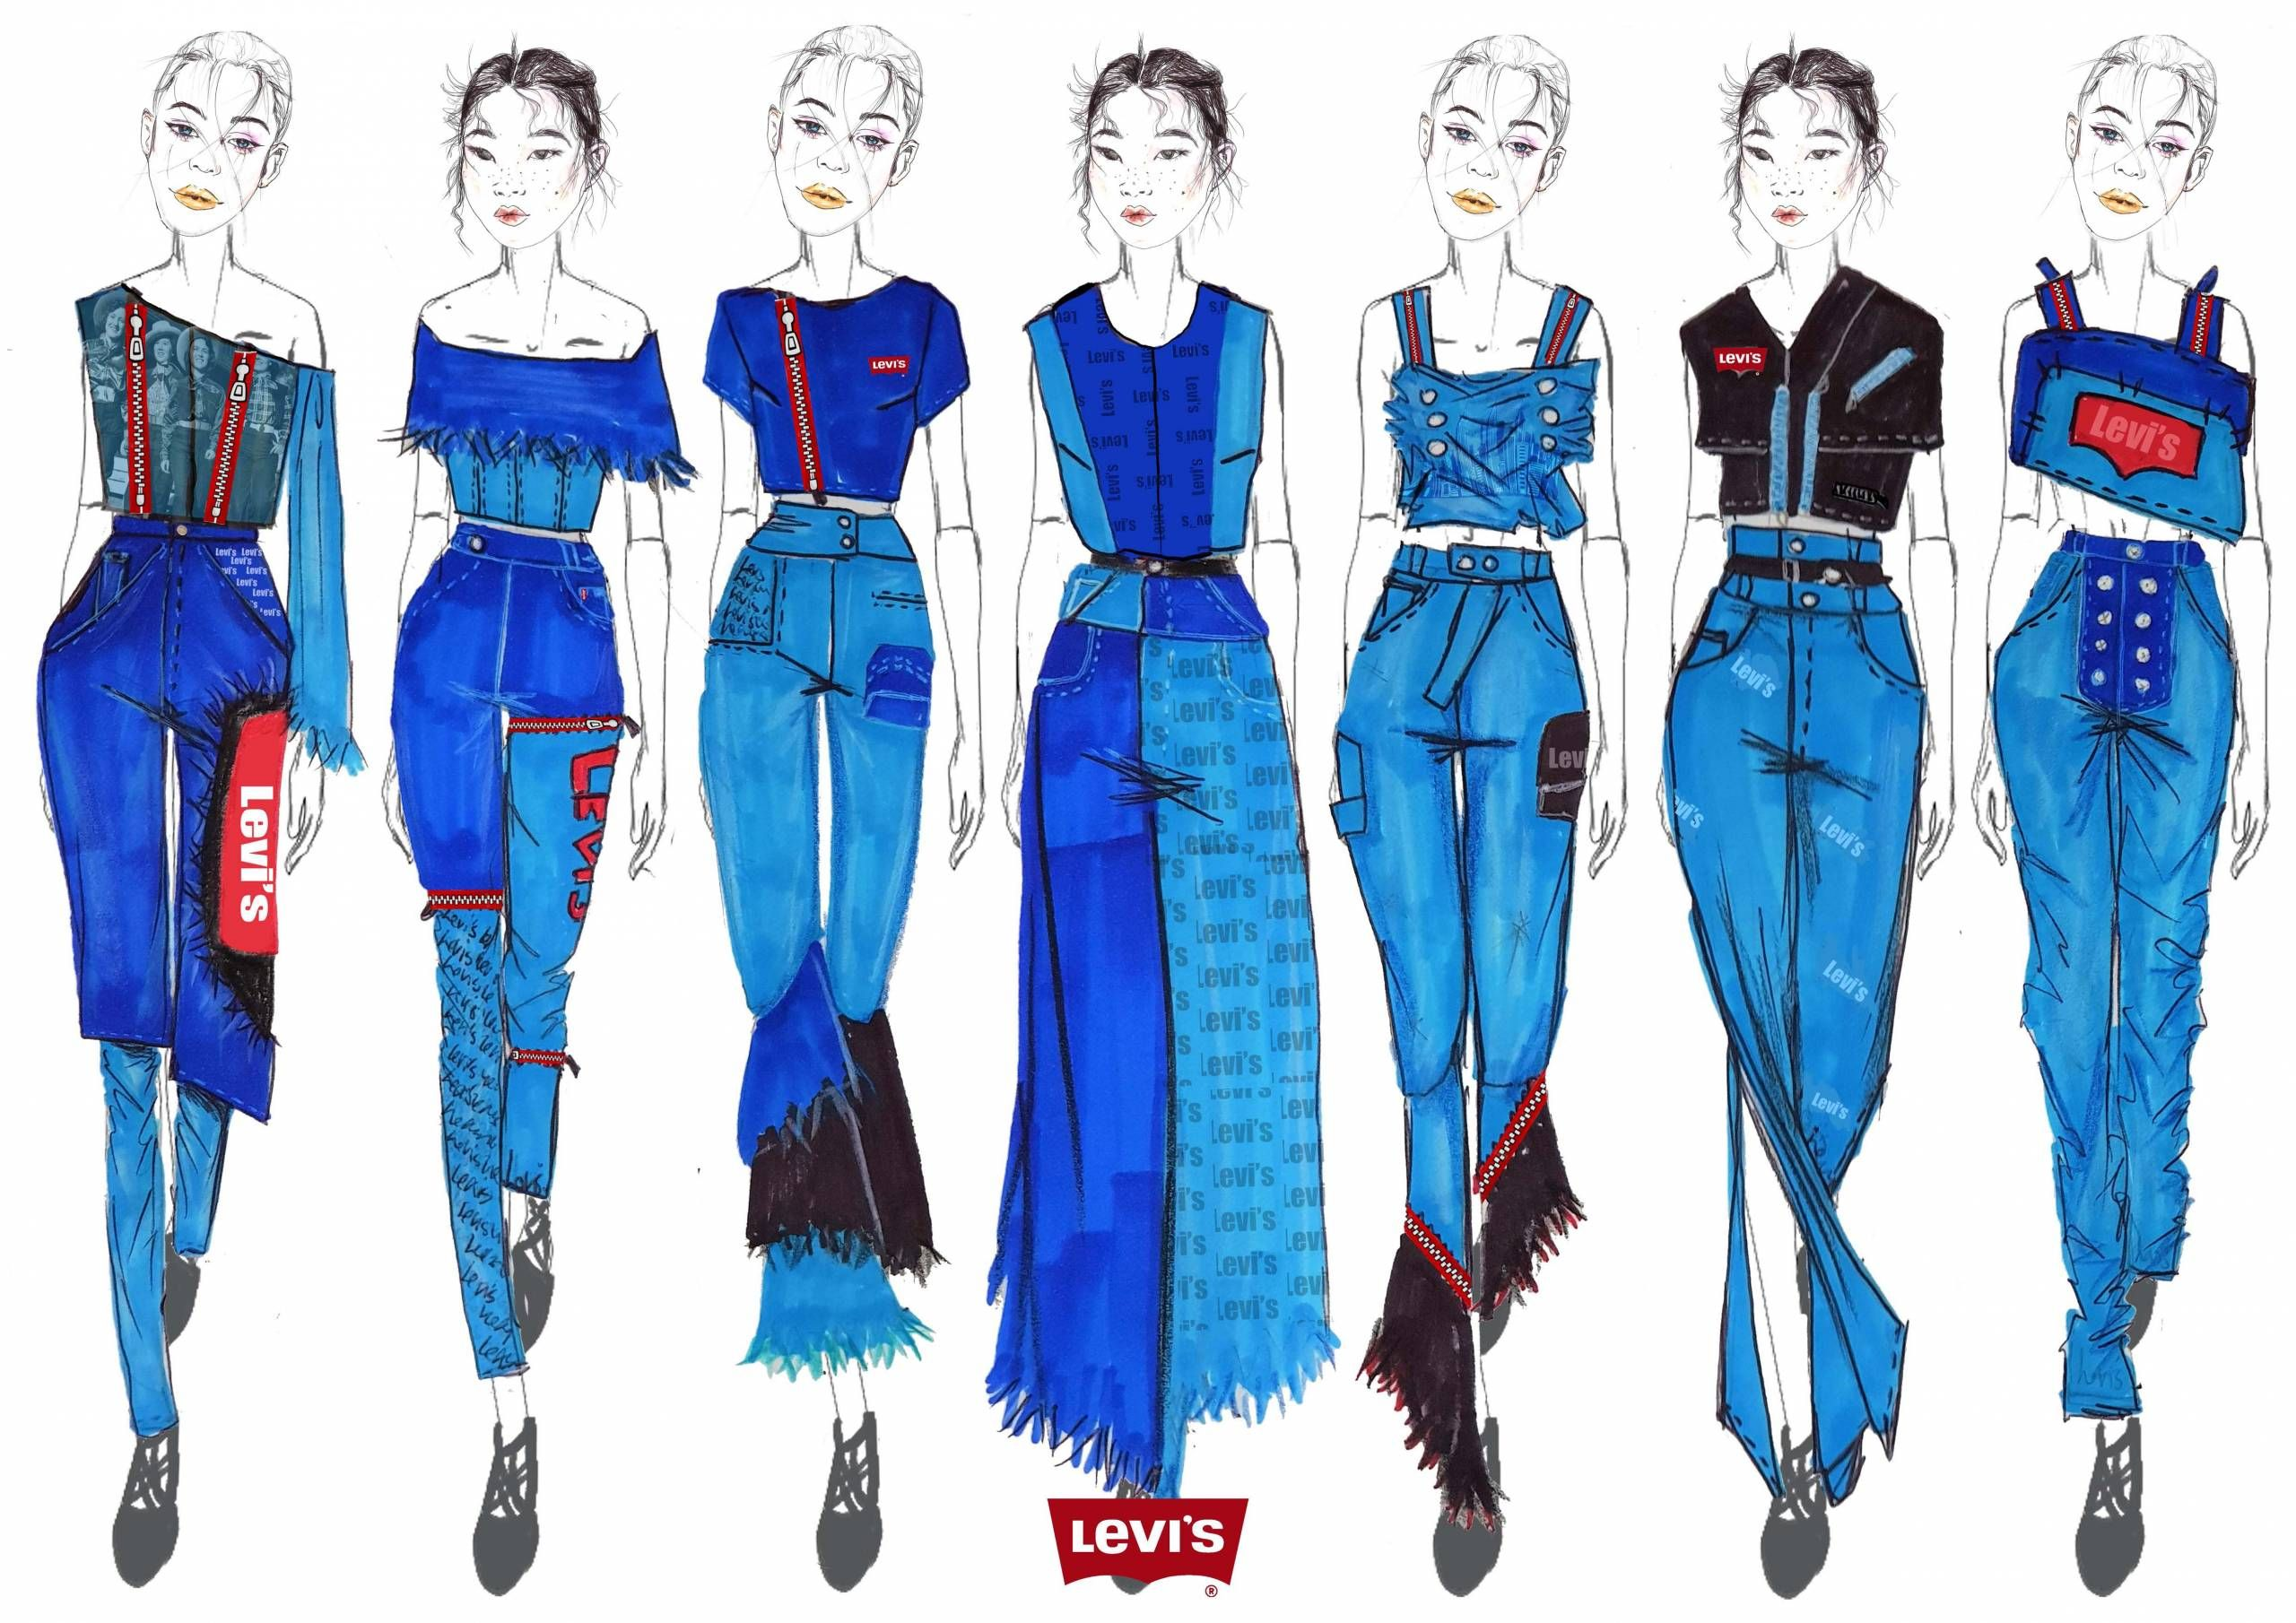 Levi S Engineered Jeans Design Competition 2018 Siwar Dridi Fashion Artwork Fashion Fashion Portfolio Layout